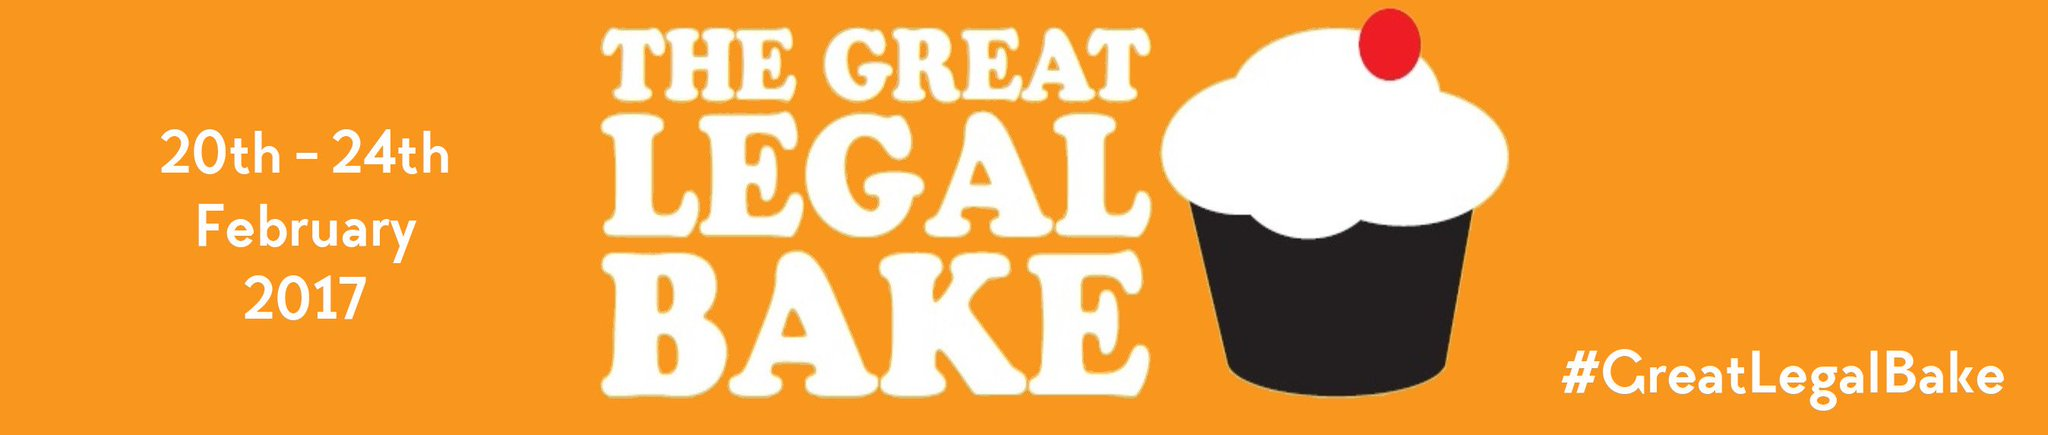 We are taking part in the #GreatLegalBake to raise money to provide #legaladvice for those unable to afford it https://t.co/gw1ALnKMq6 https://t.co/3s1TztqSad